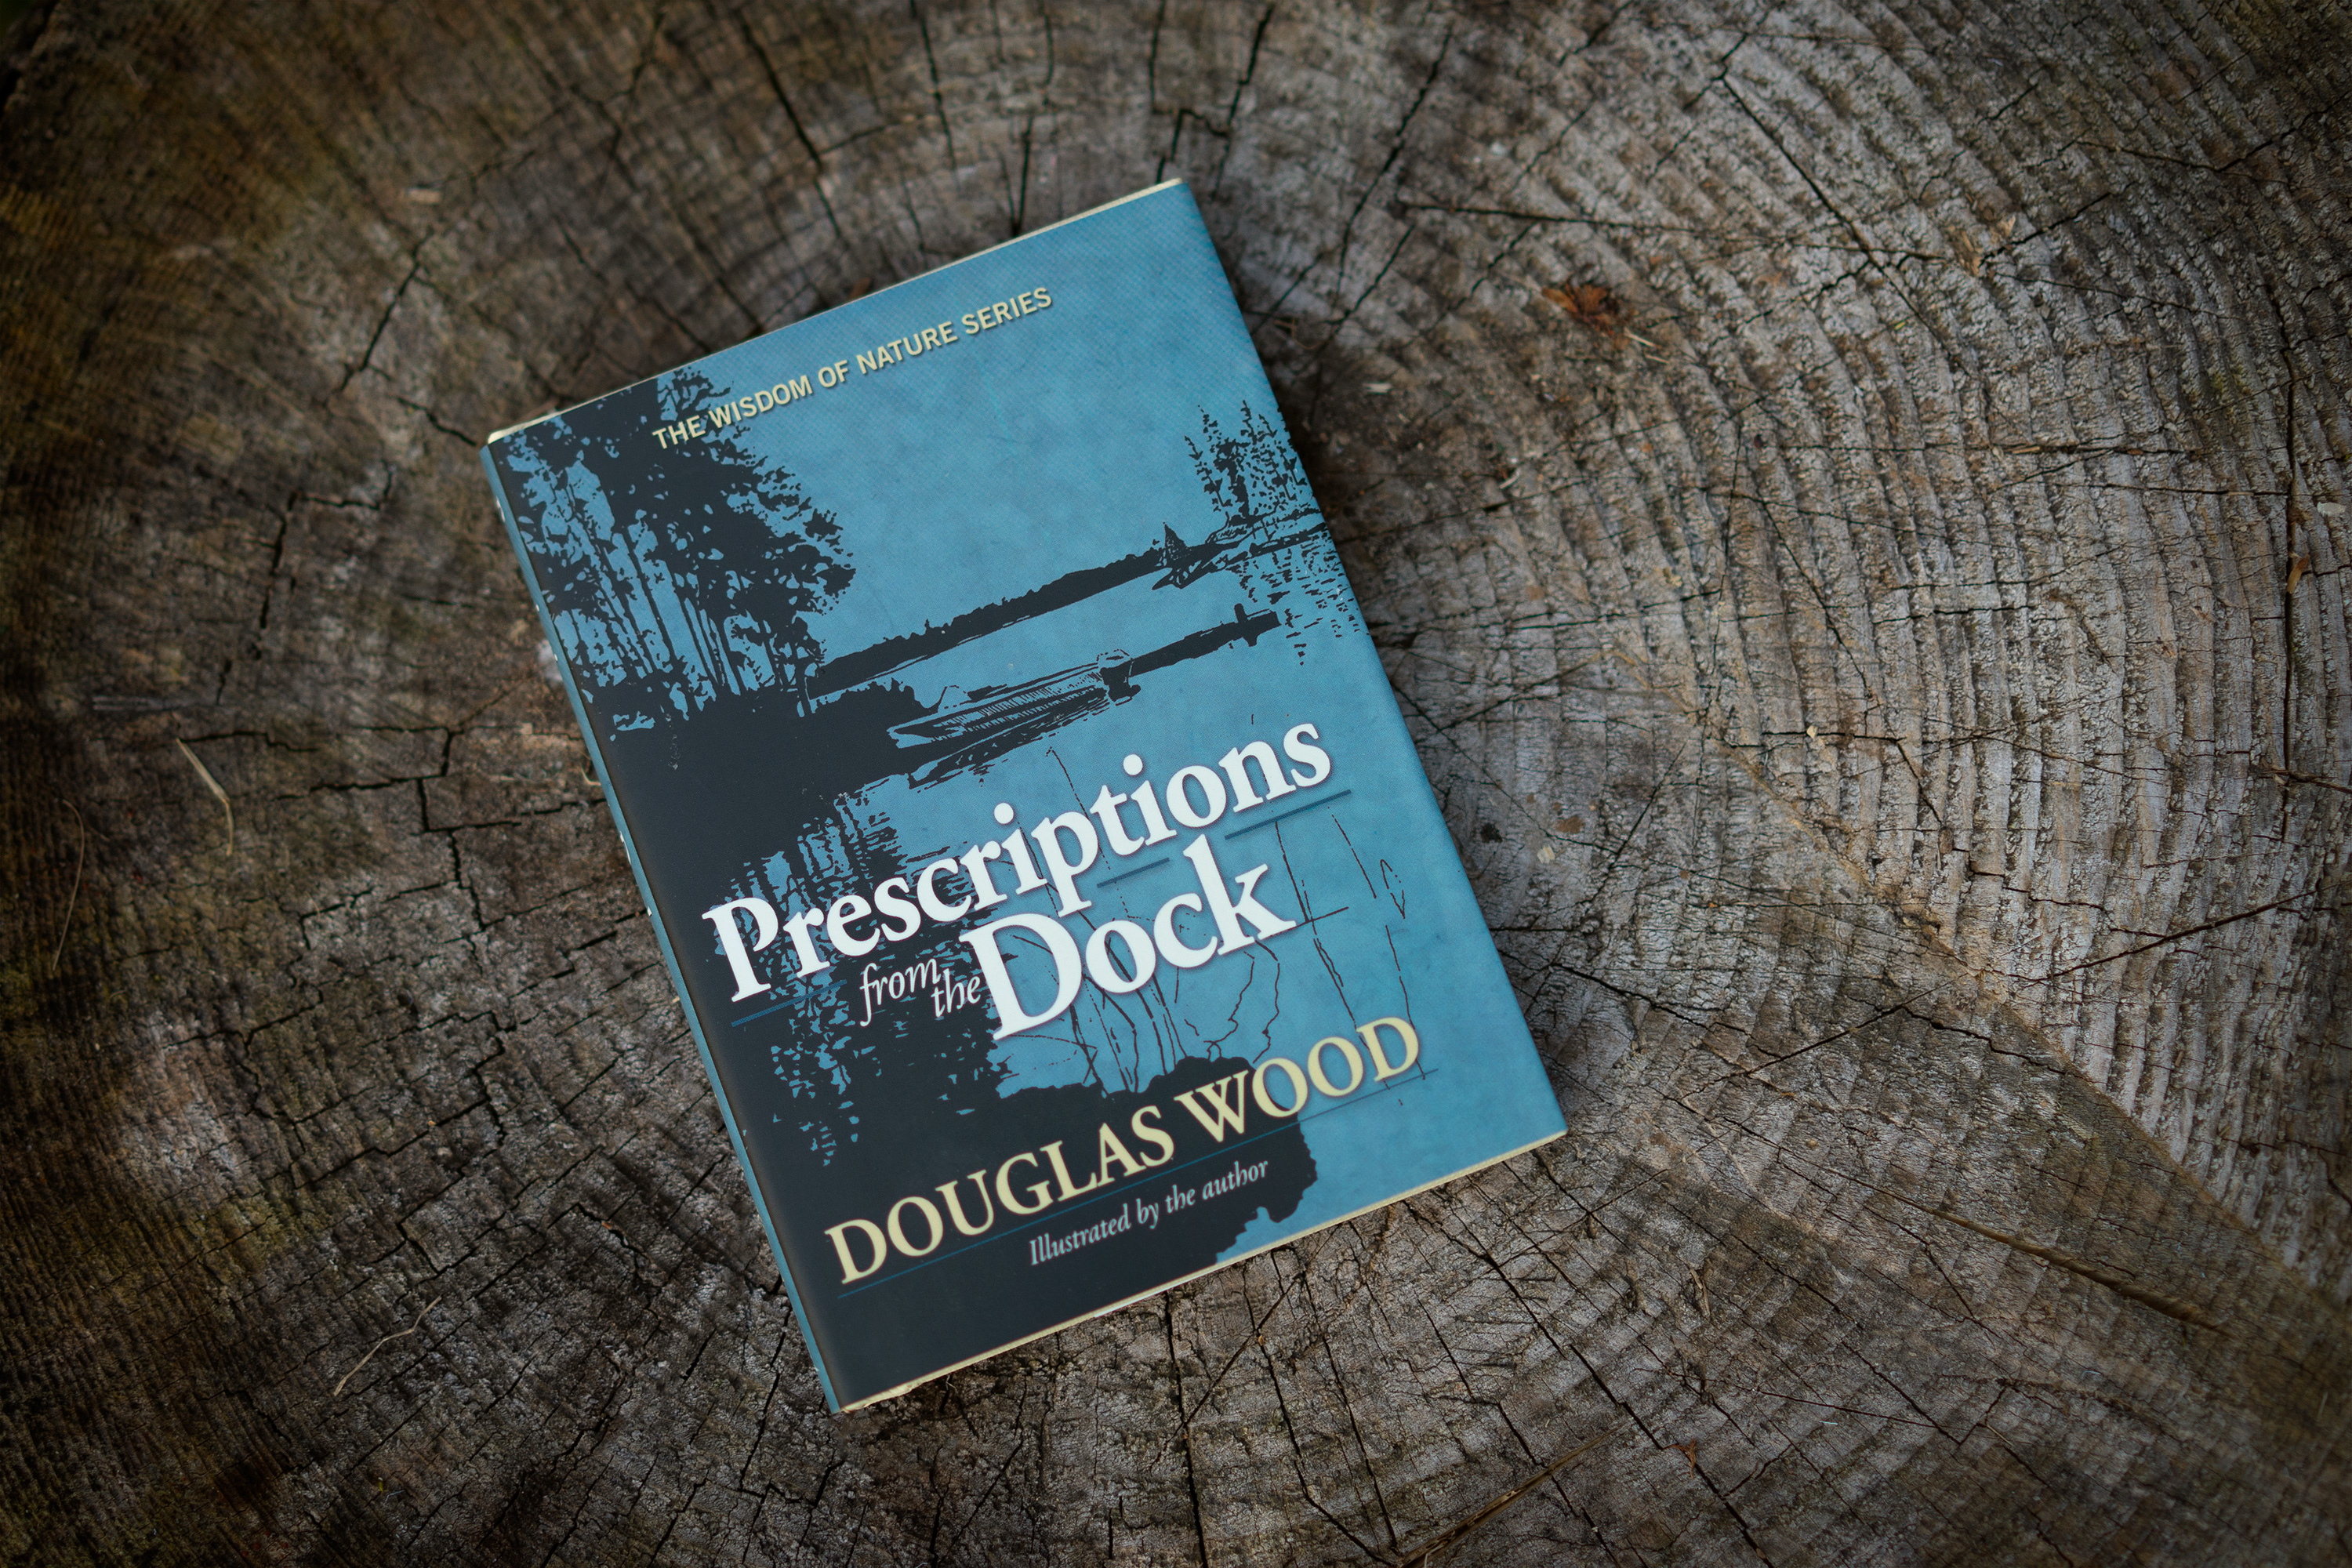 prescriptions from the dock by douglas wood